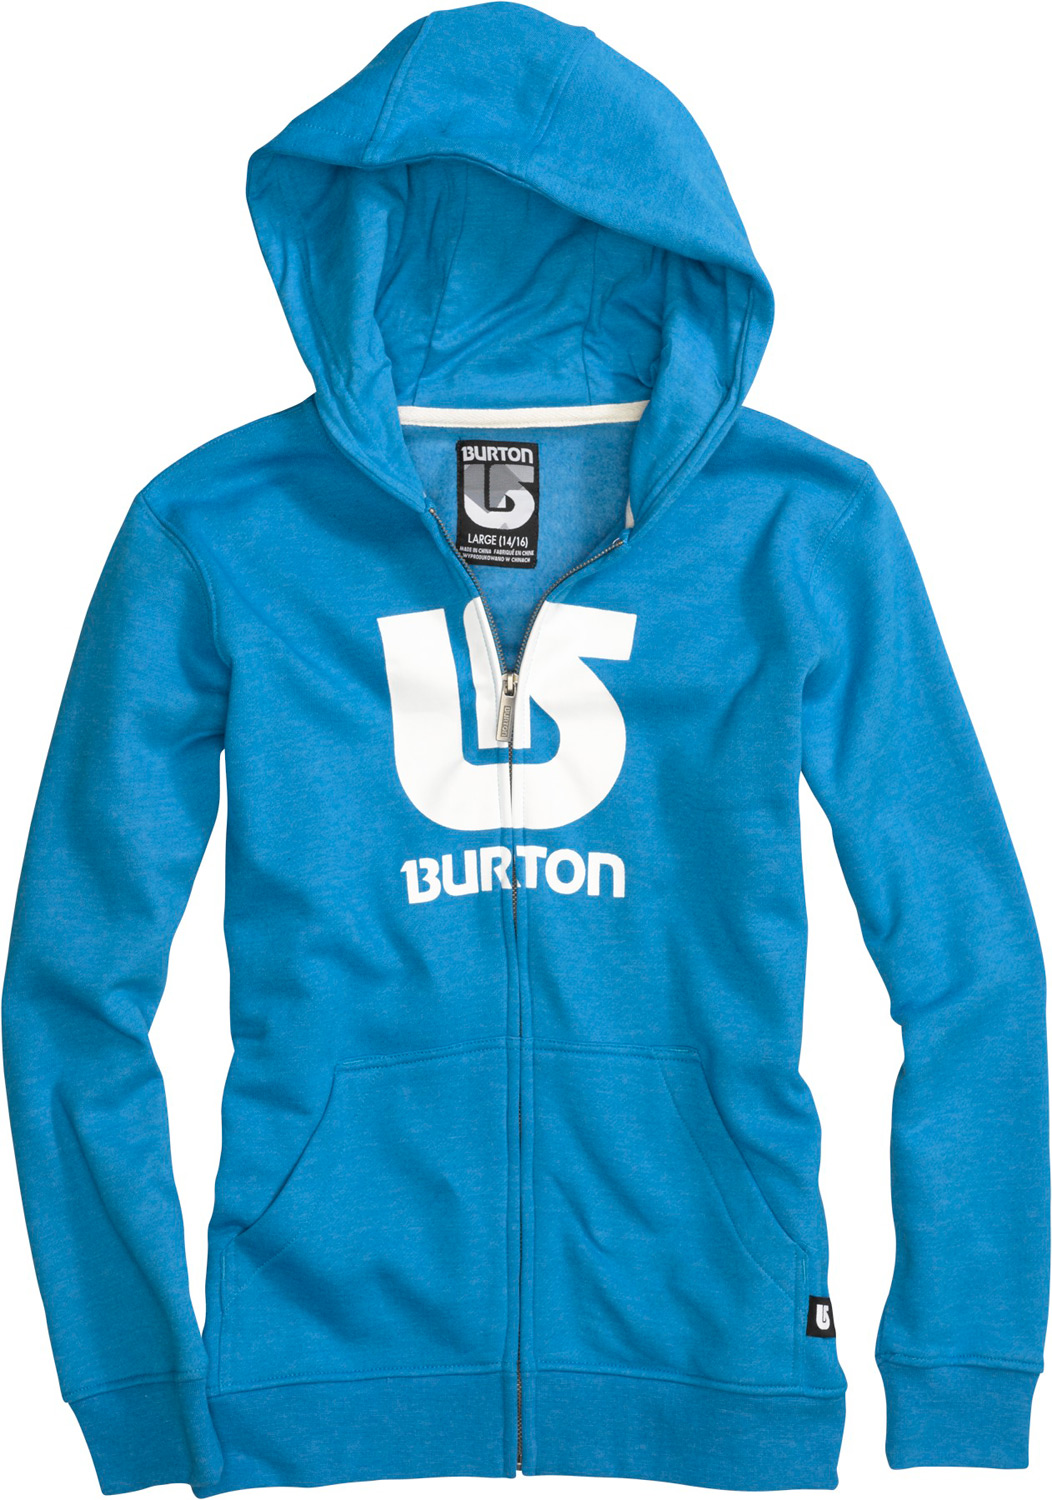 Snowboard Key Features of the Burton Logo Horizontal Fullzip Hoodie: 80% Cotton, 20% Polyester, 300G Fleece screen Print on Chest regular Fit - $33.95